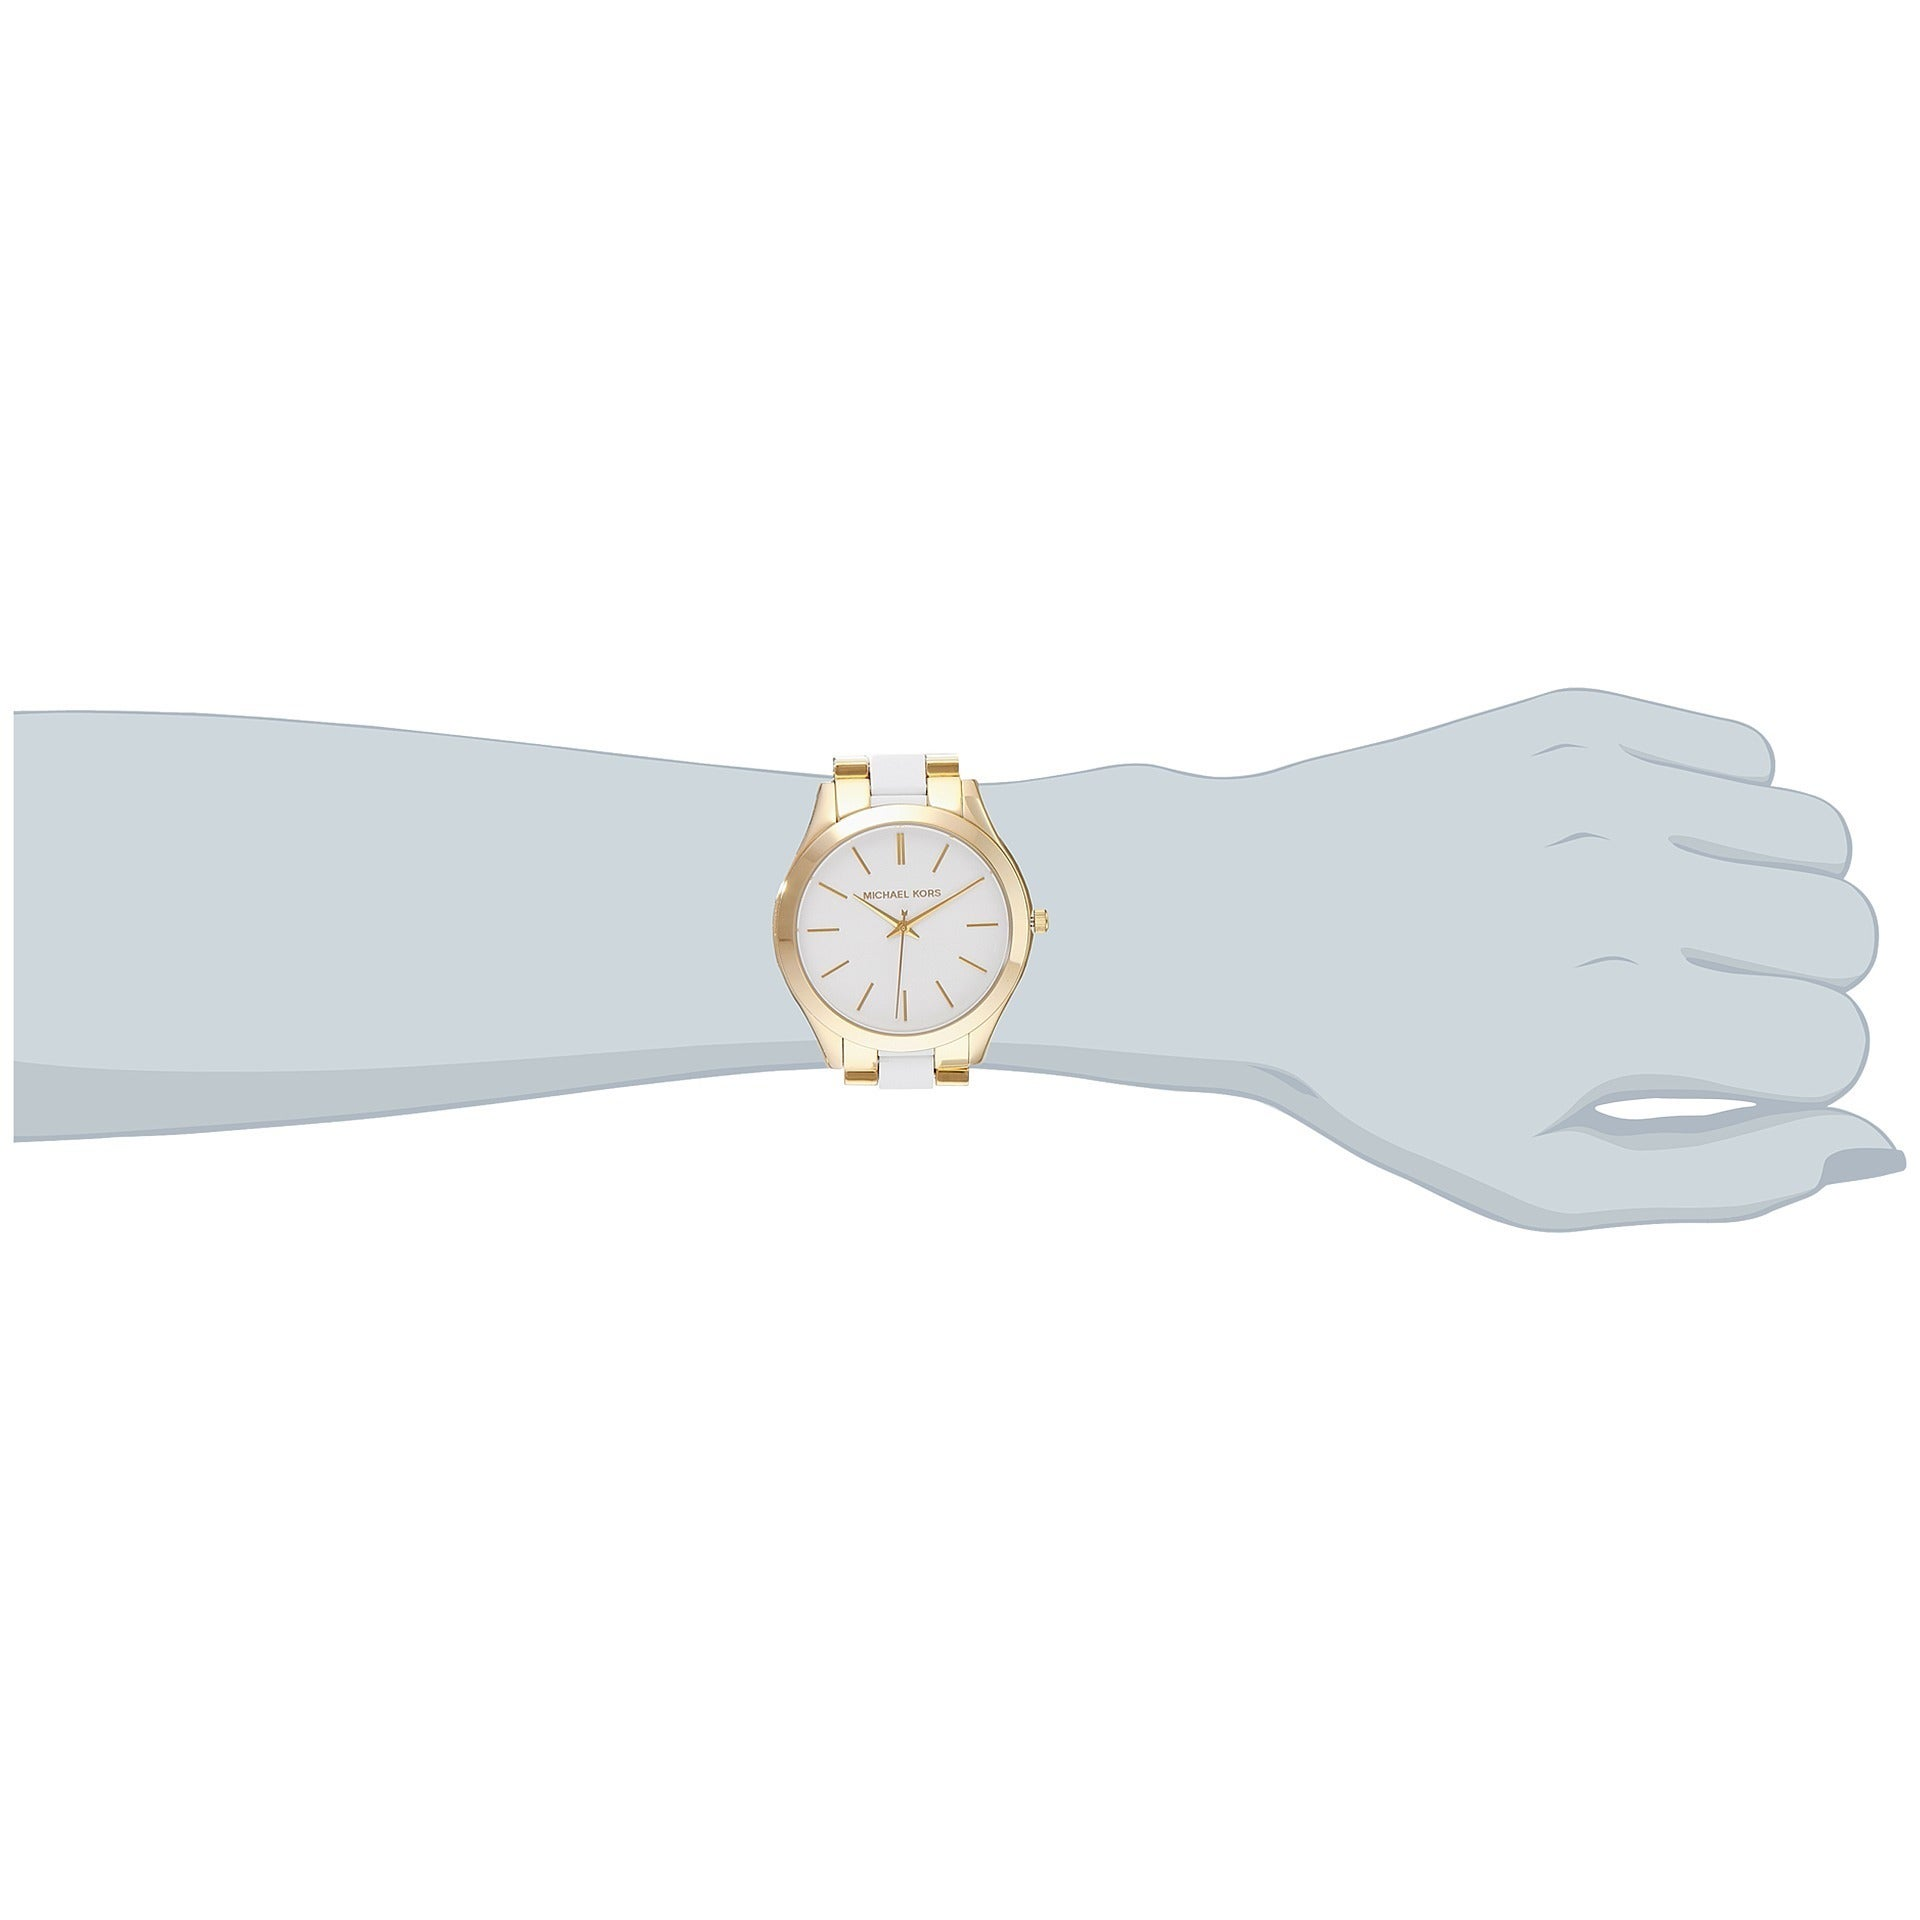 84959c3a13da Shop Michael Kors Women s MK4295  Slim Runway  Two tone Stainless Steel  Watch - Free Shipping Today - Overstock - 10018749